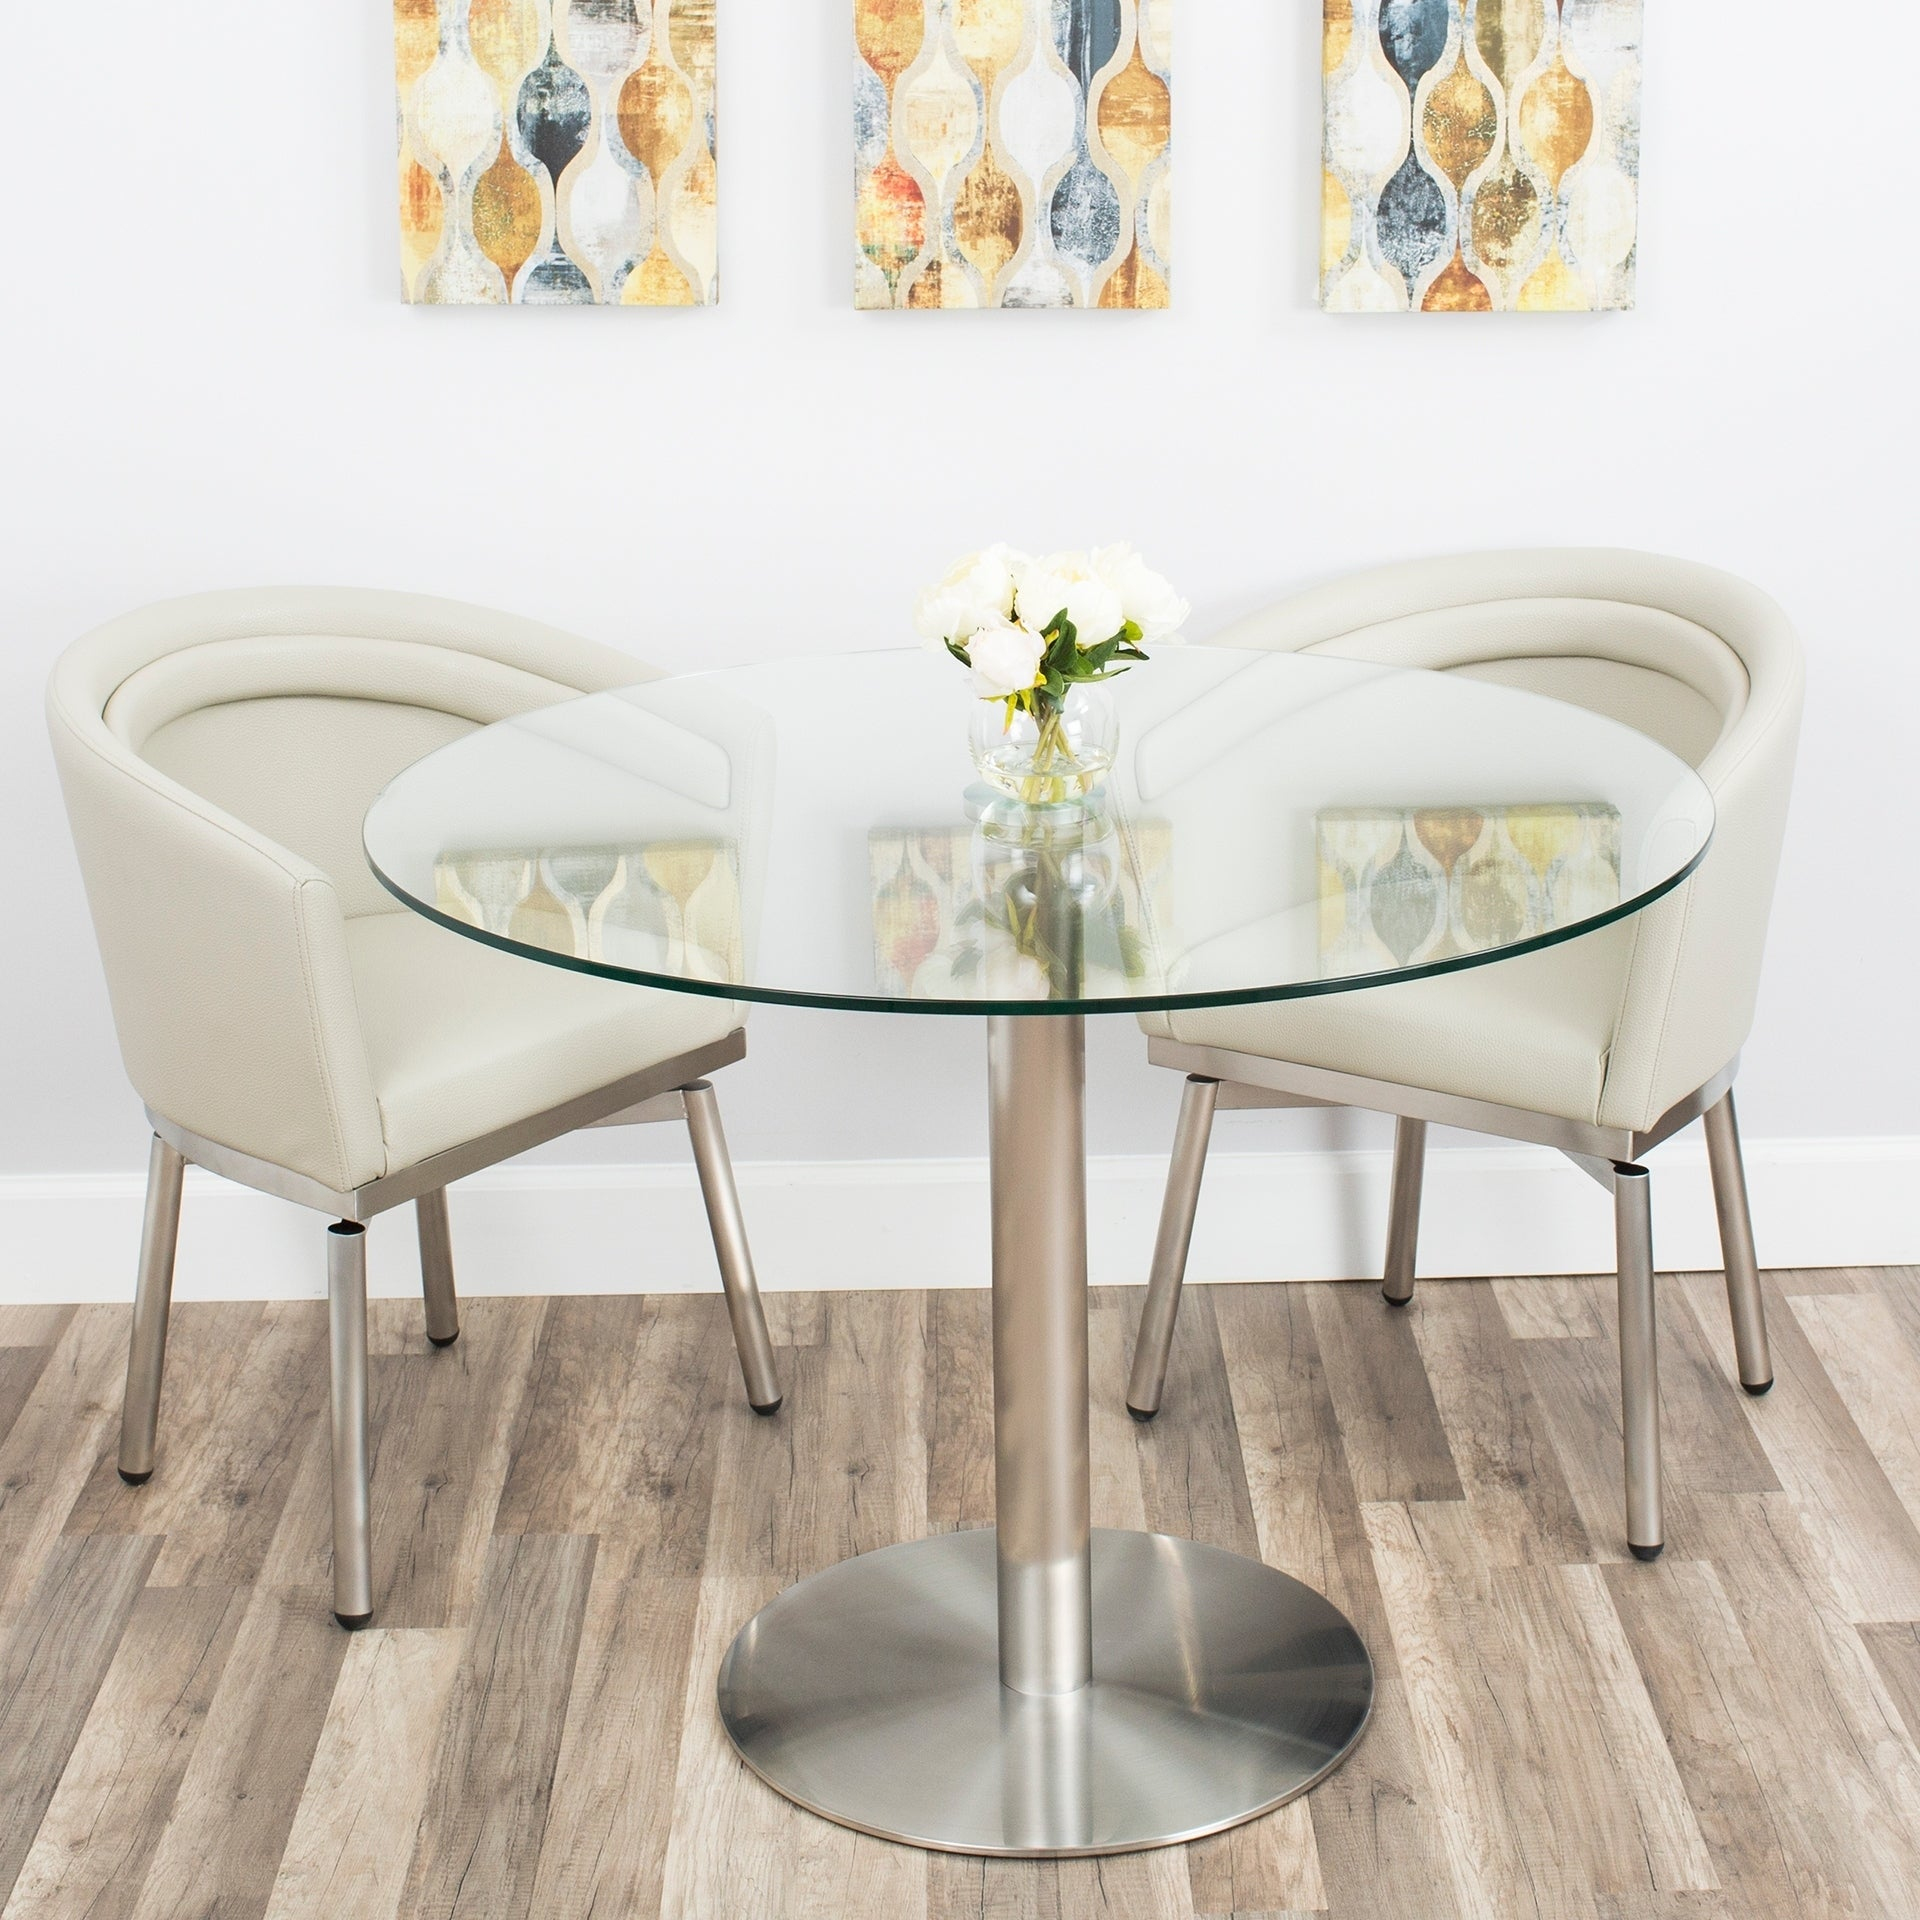 40 Inch Diameter Dining Table